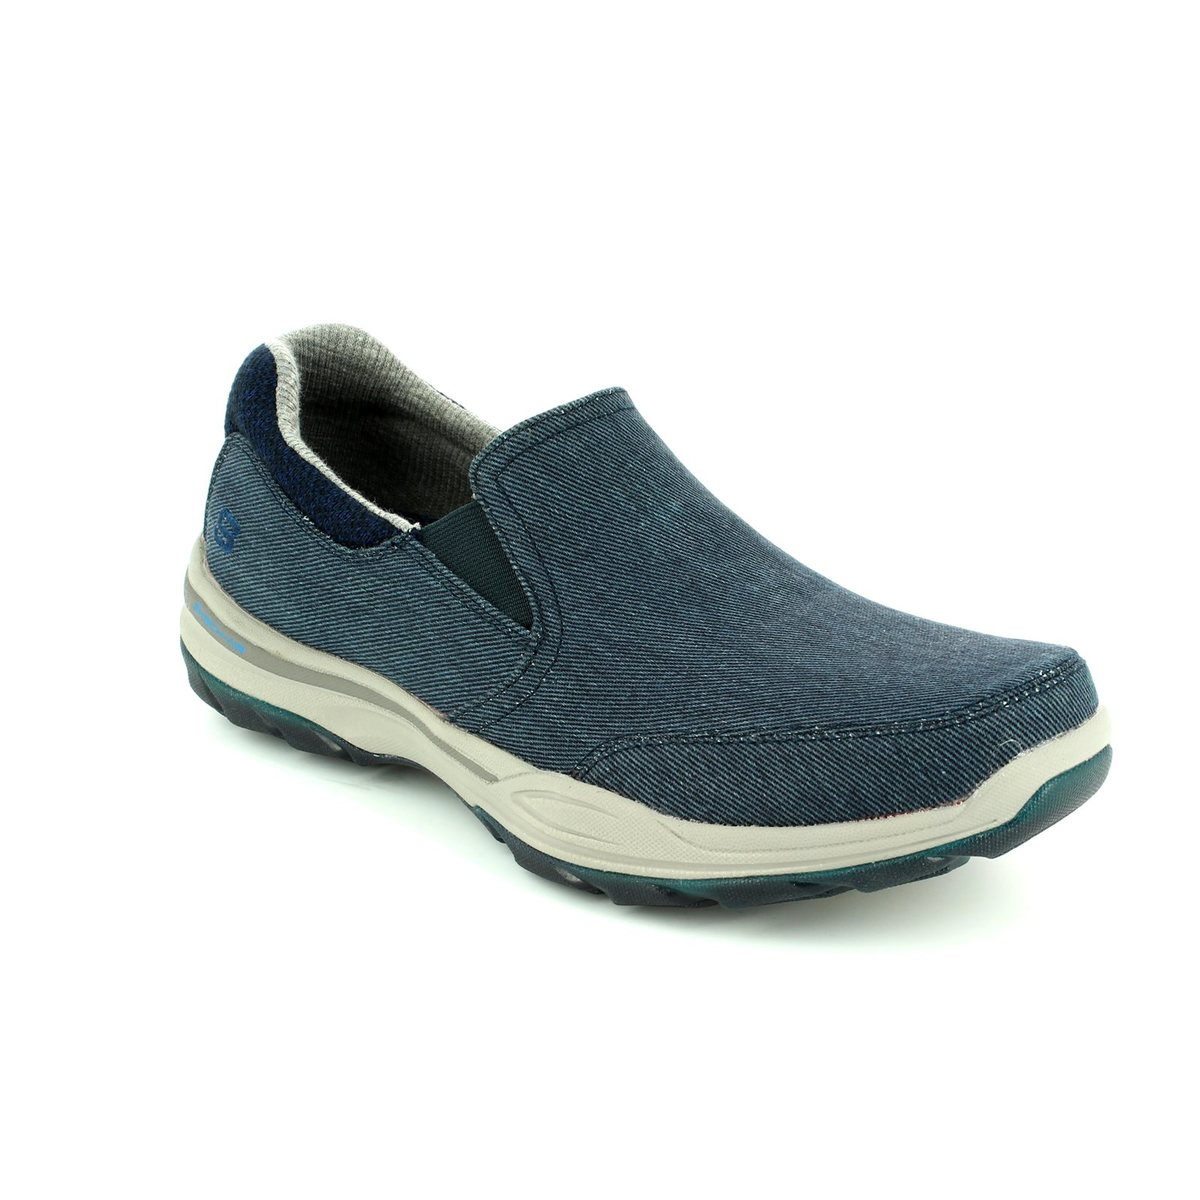 00ffc09aa31 Skechers Elment Campo 65001 NVY Navy casual shoes